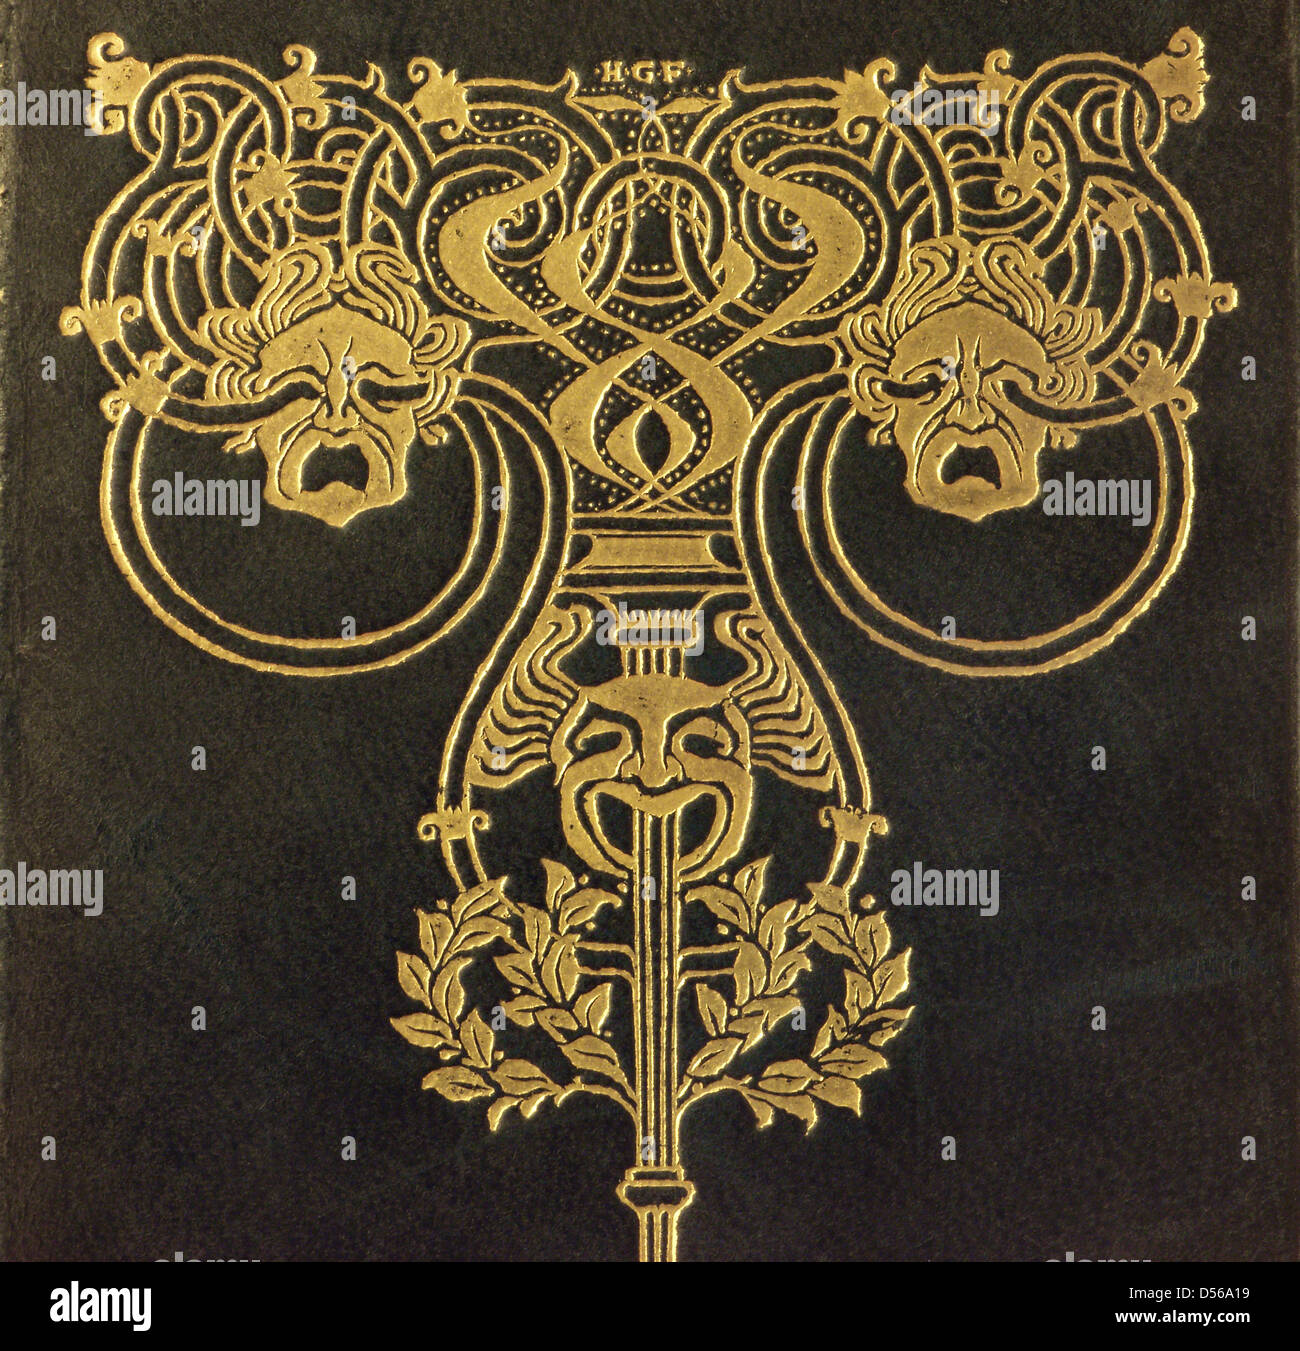 A section of the front cover of an antiquarian gold tooled leather bound volume of Shakespeares plays - Stock Image